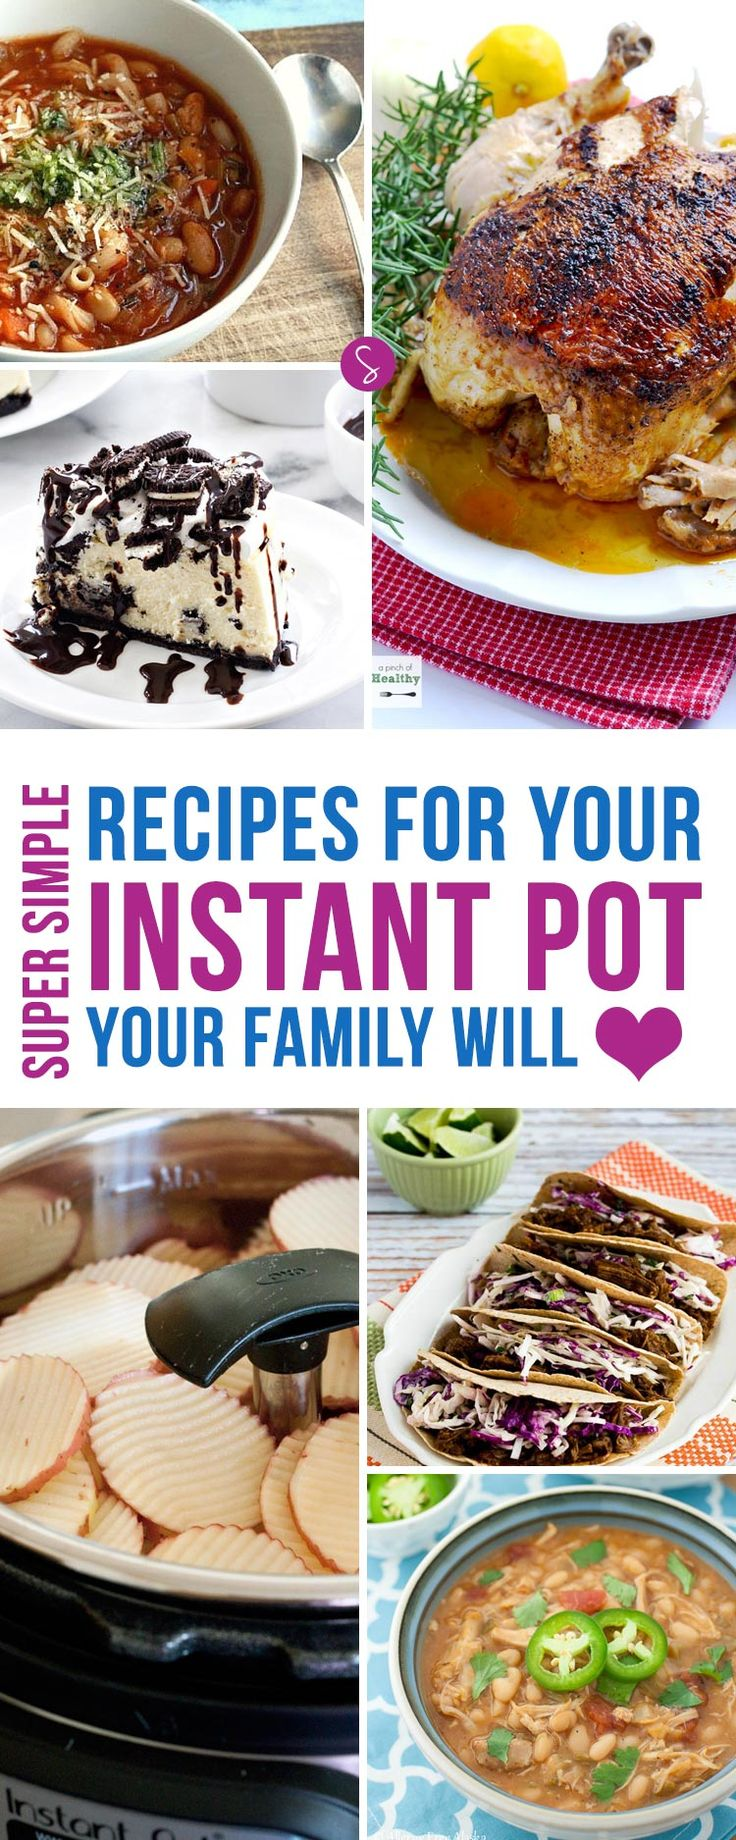 LOVING these Instant Pot recipes - ESPECIALLY that cheesecake!